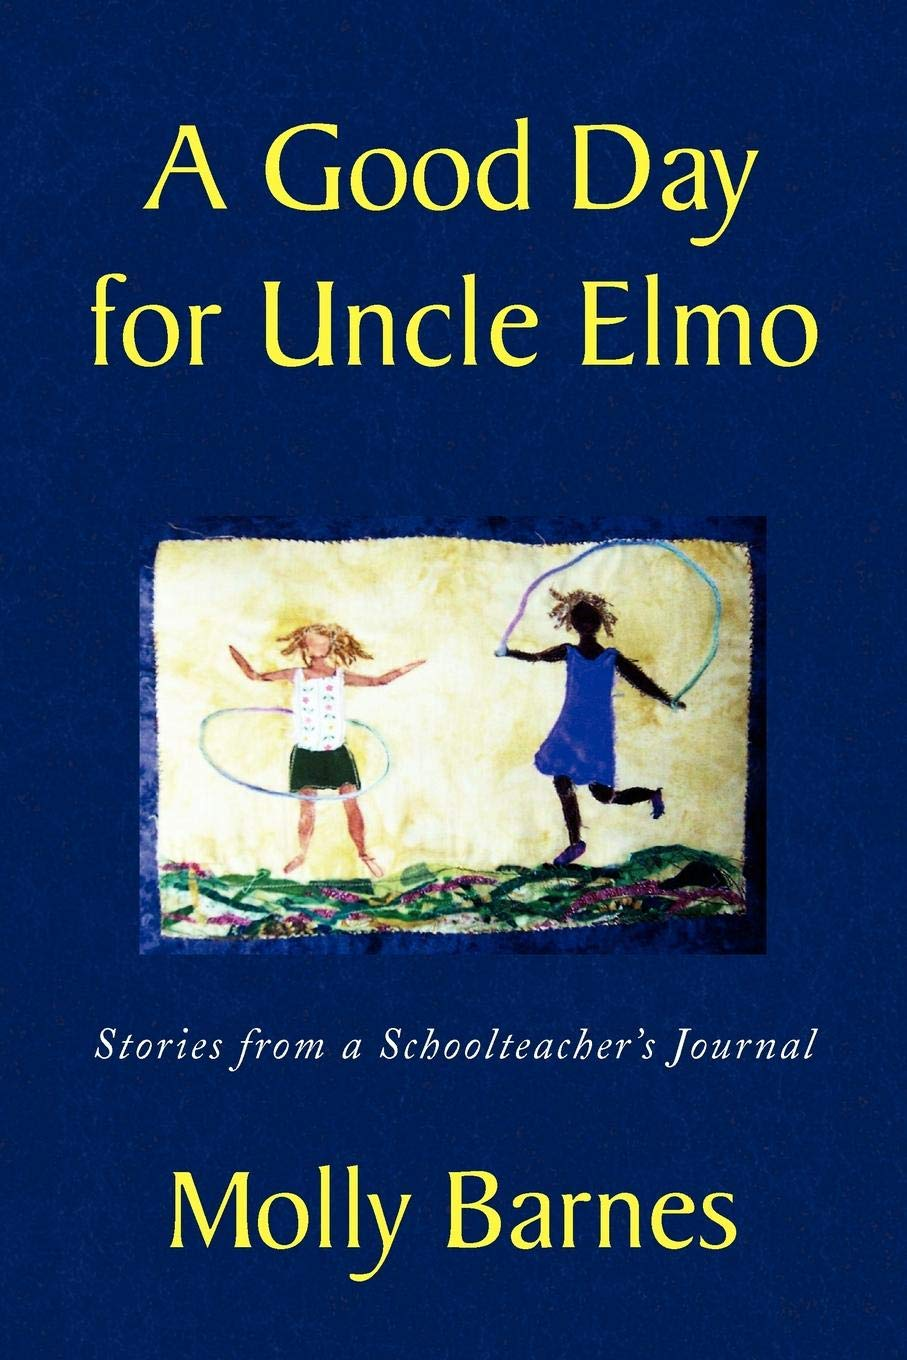 A Good Day for Uncle Elmo: Stories from a Schoolteachers Journal